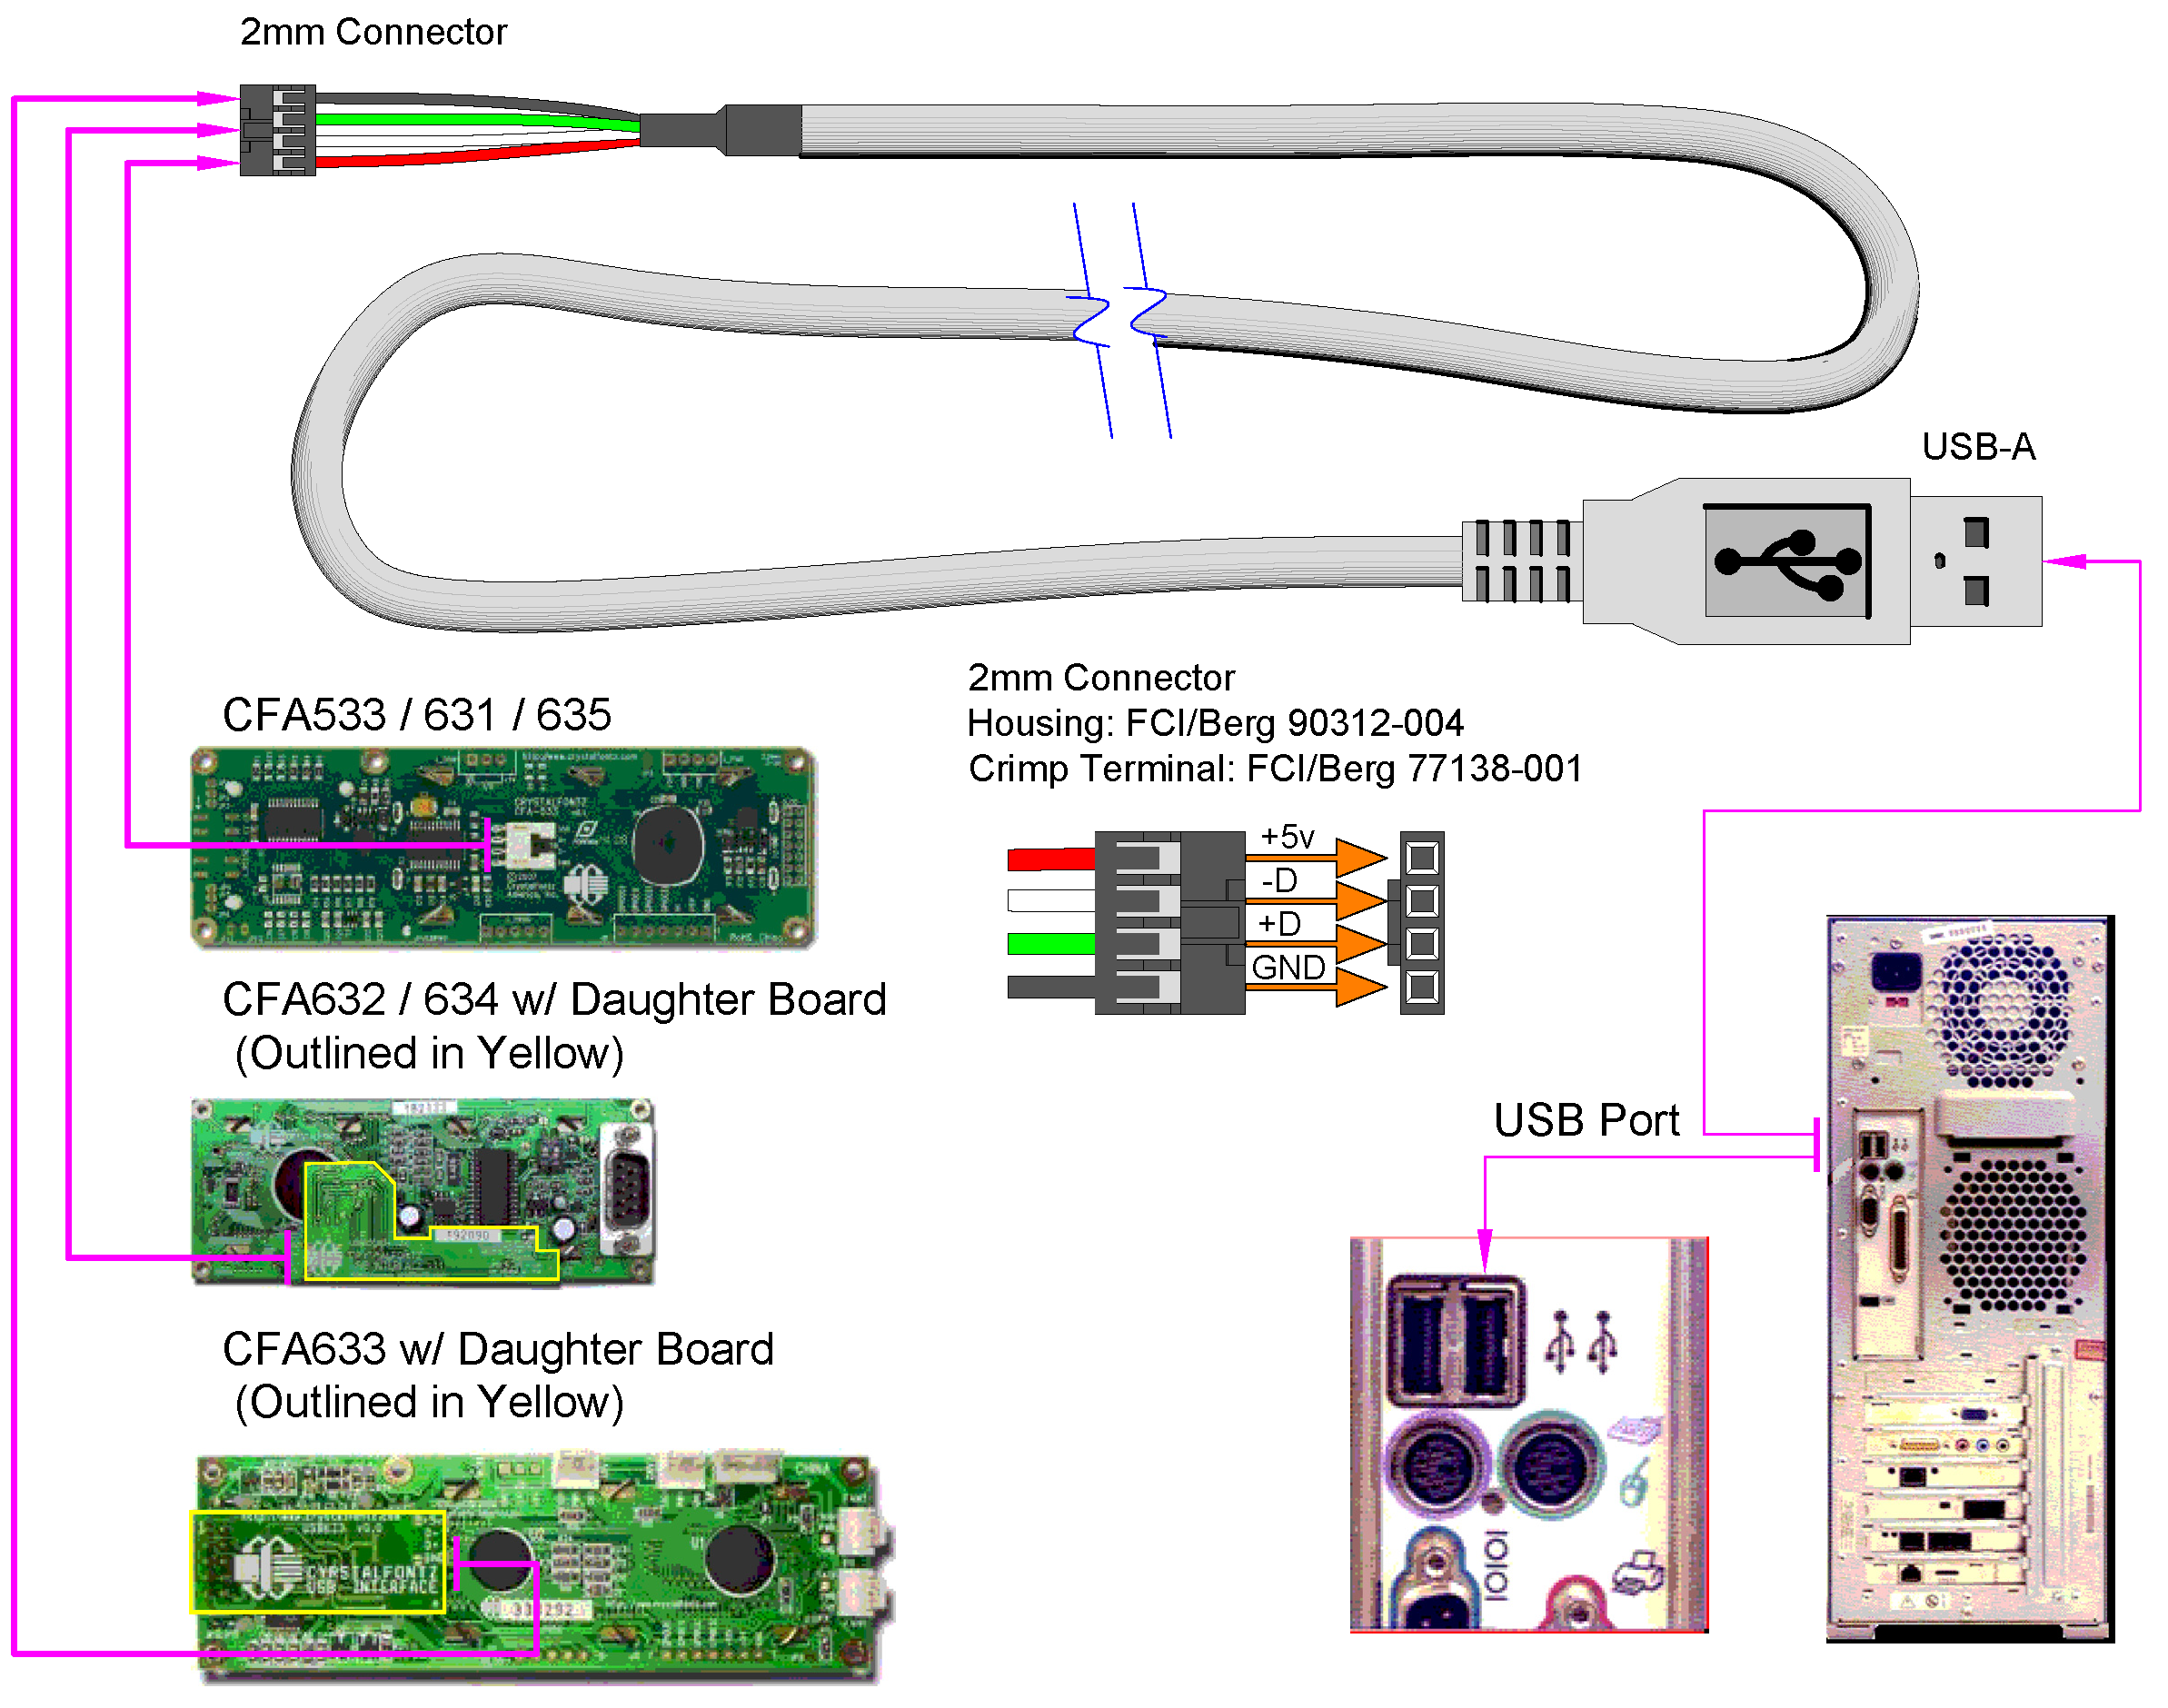 usb audio wiring diagram silverado usb port wiring diagram usb-a to 2mm lcd cable (wrusby03) from crystalfontz